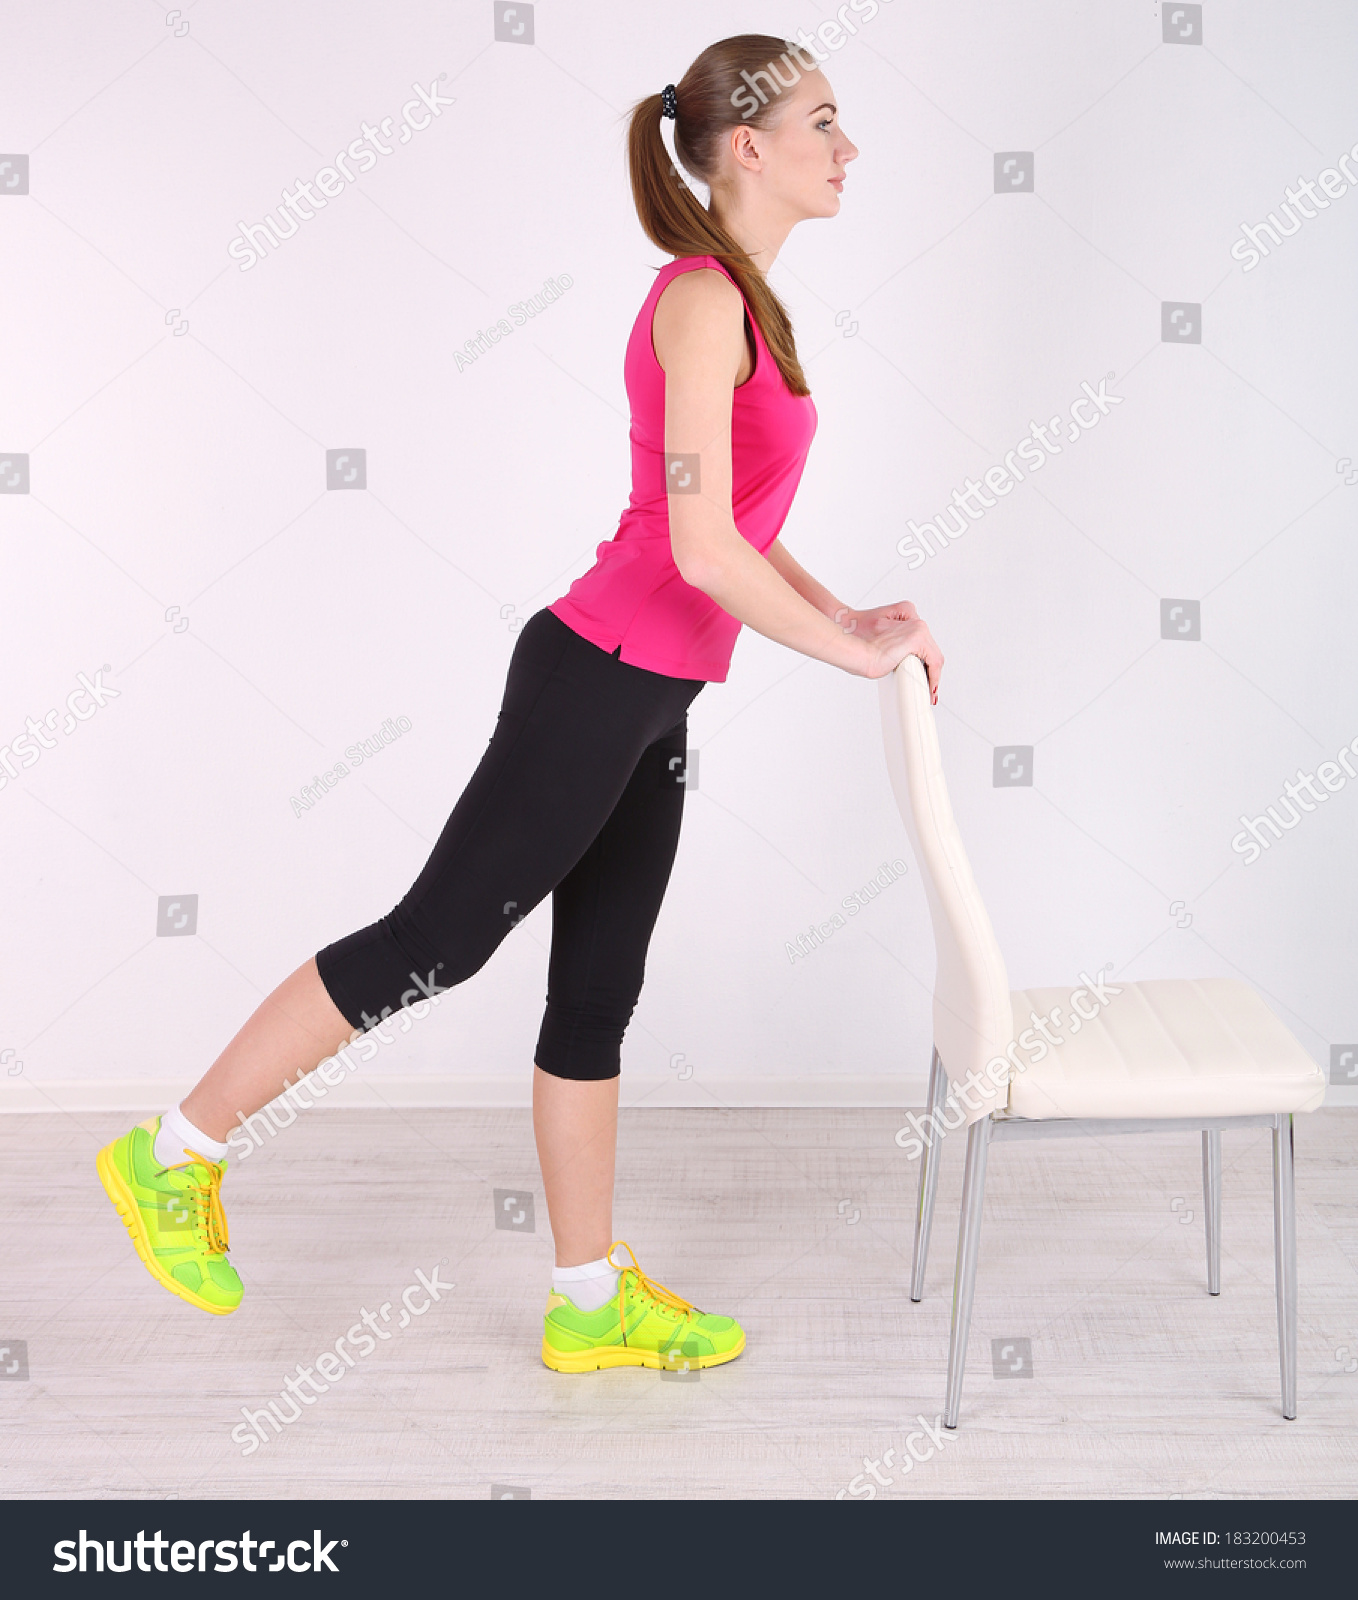 Woman Pilates Chair Exercises Fitness Stock Photo: Young Beautiful Fitness Girl Exercising With Chair In Gym